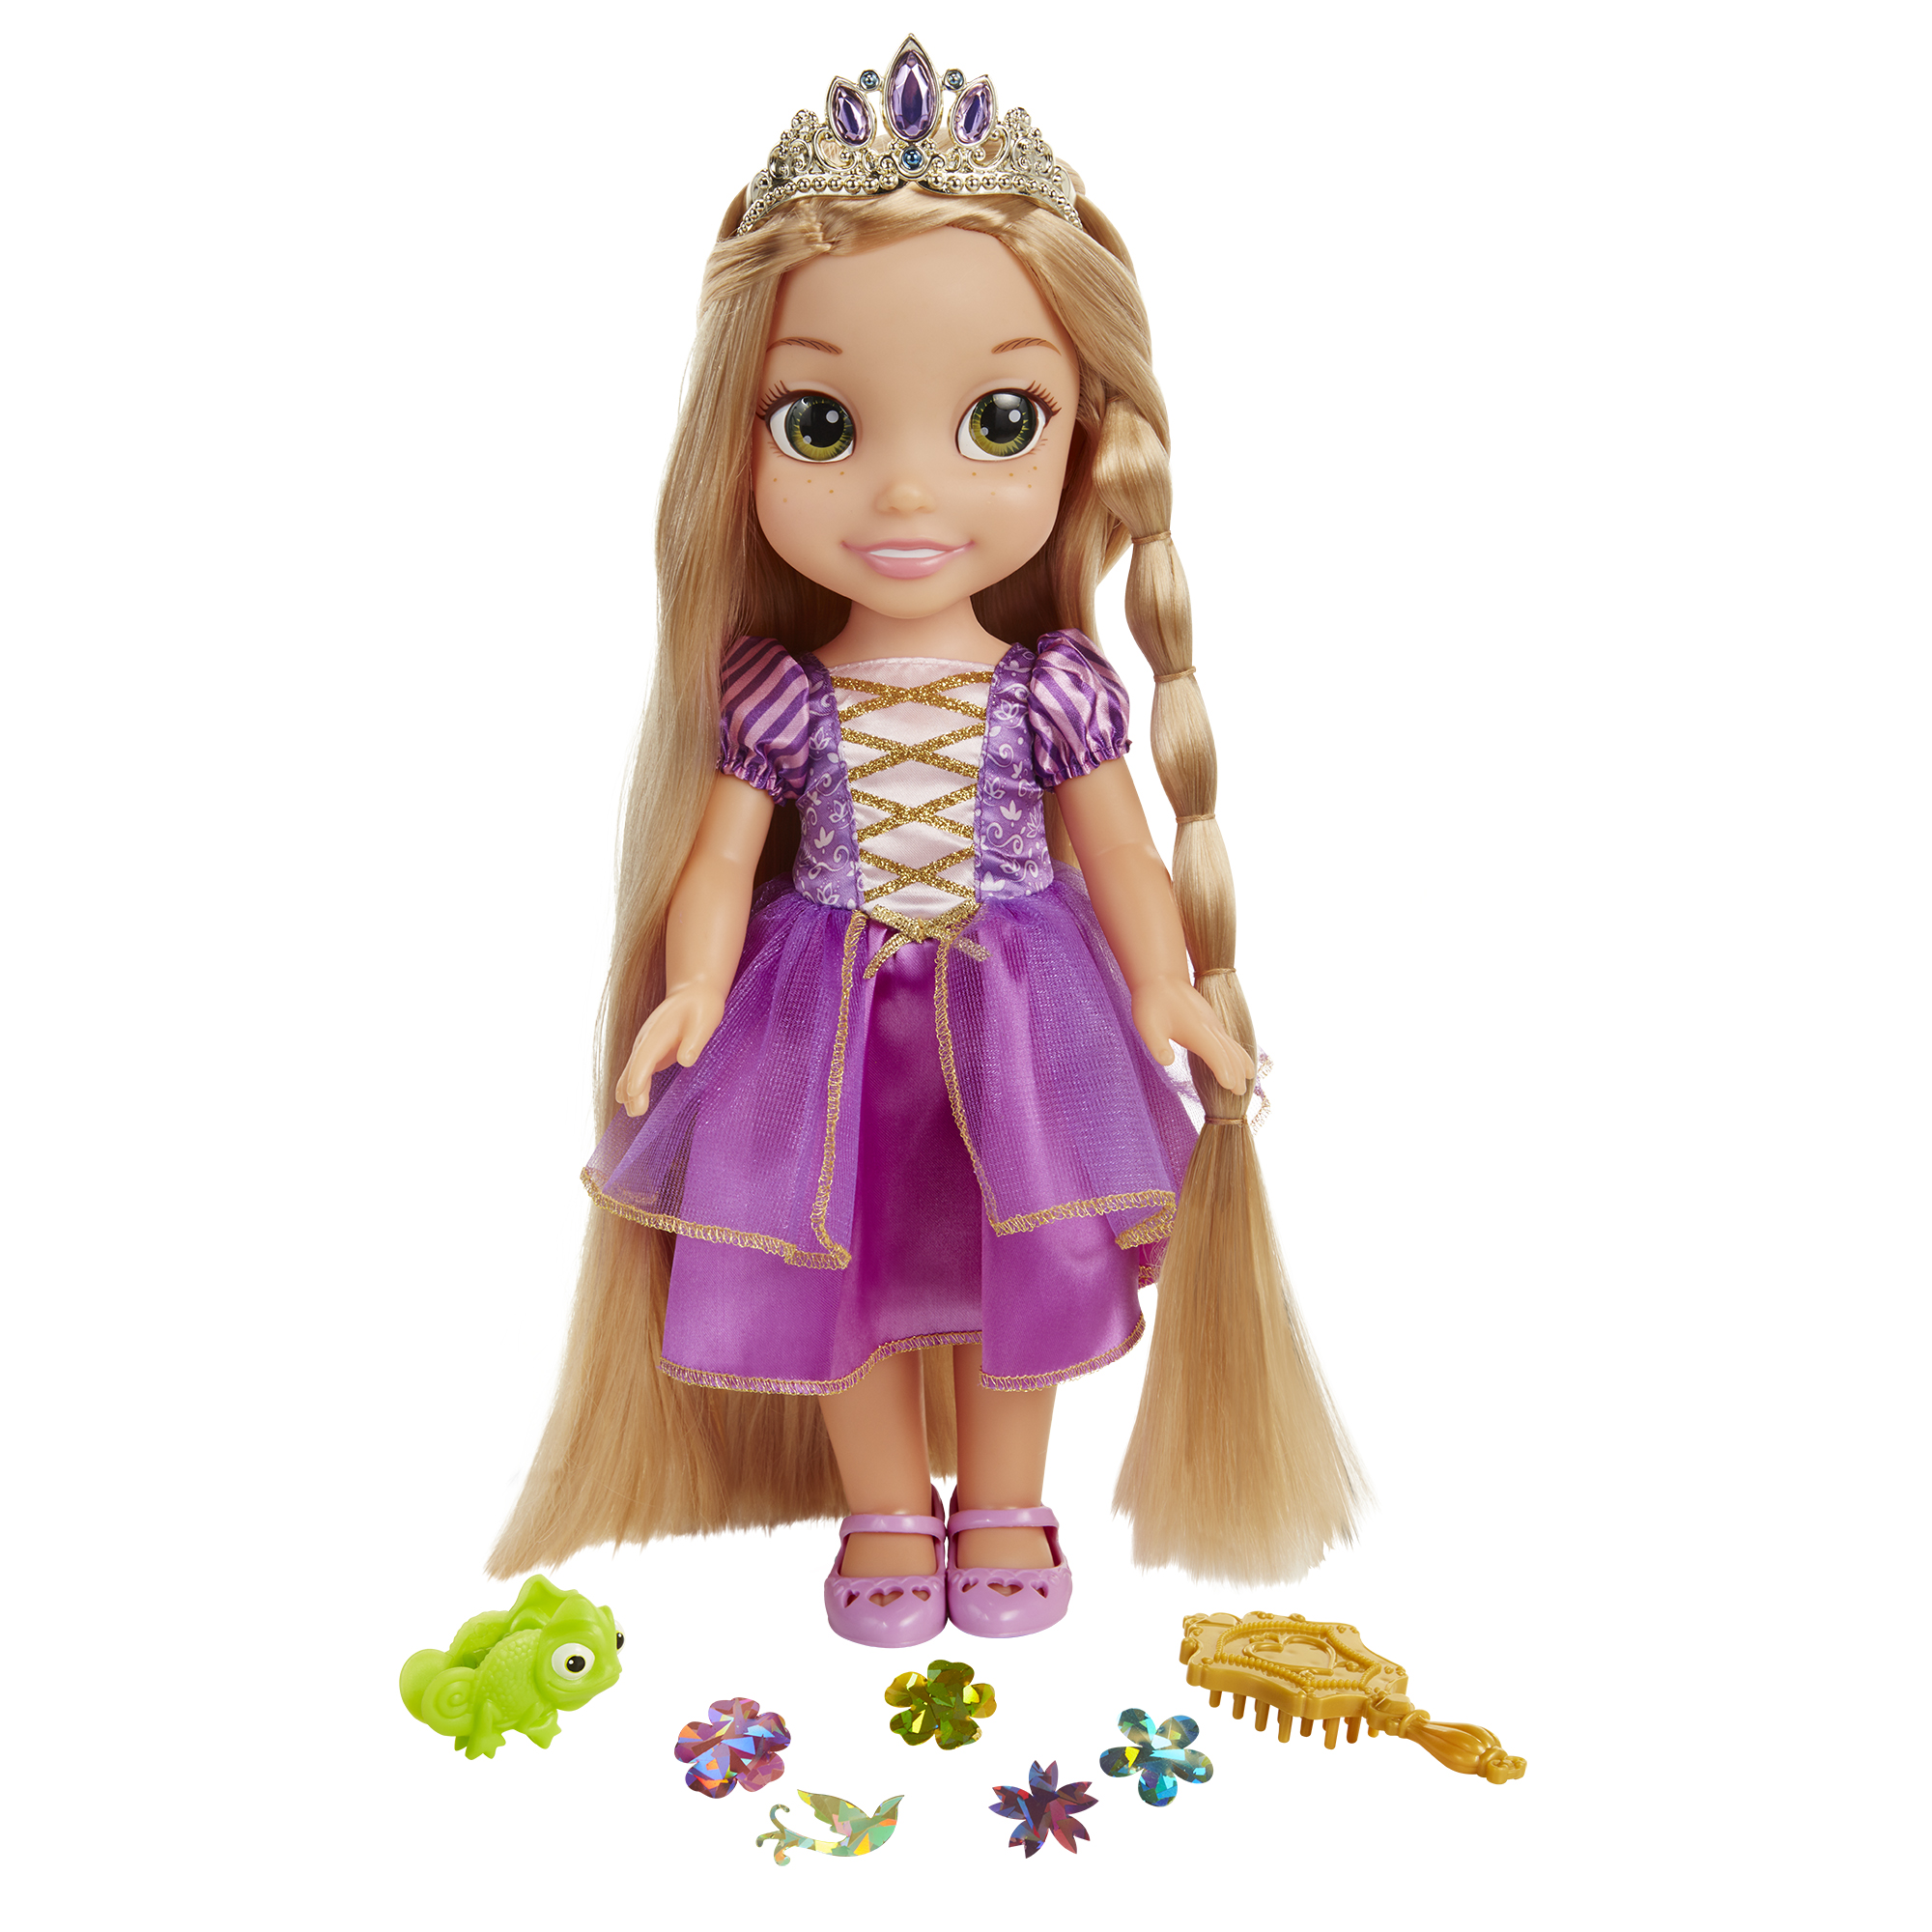 "Disney Princess Glow N Style Rapunzel 14"" Feature Doll"